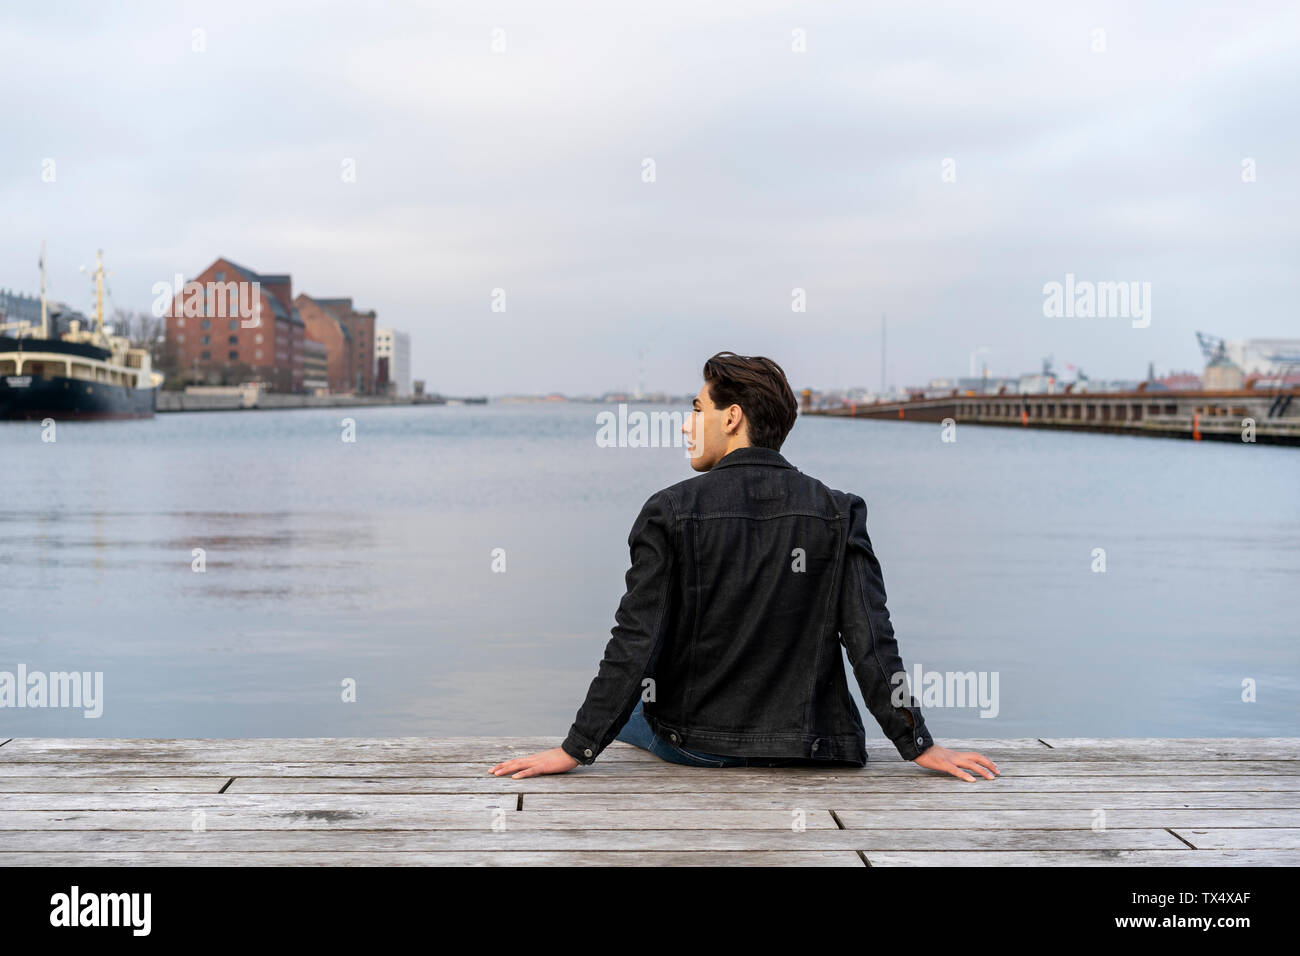 Denmark, Copenhagen, rear view of young man sitting at the waterfront - Stock Image